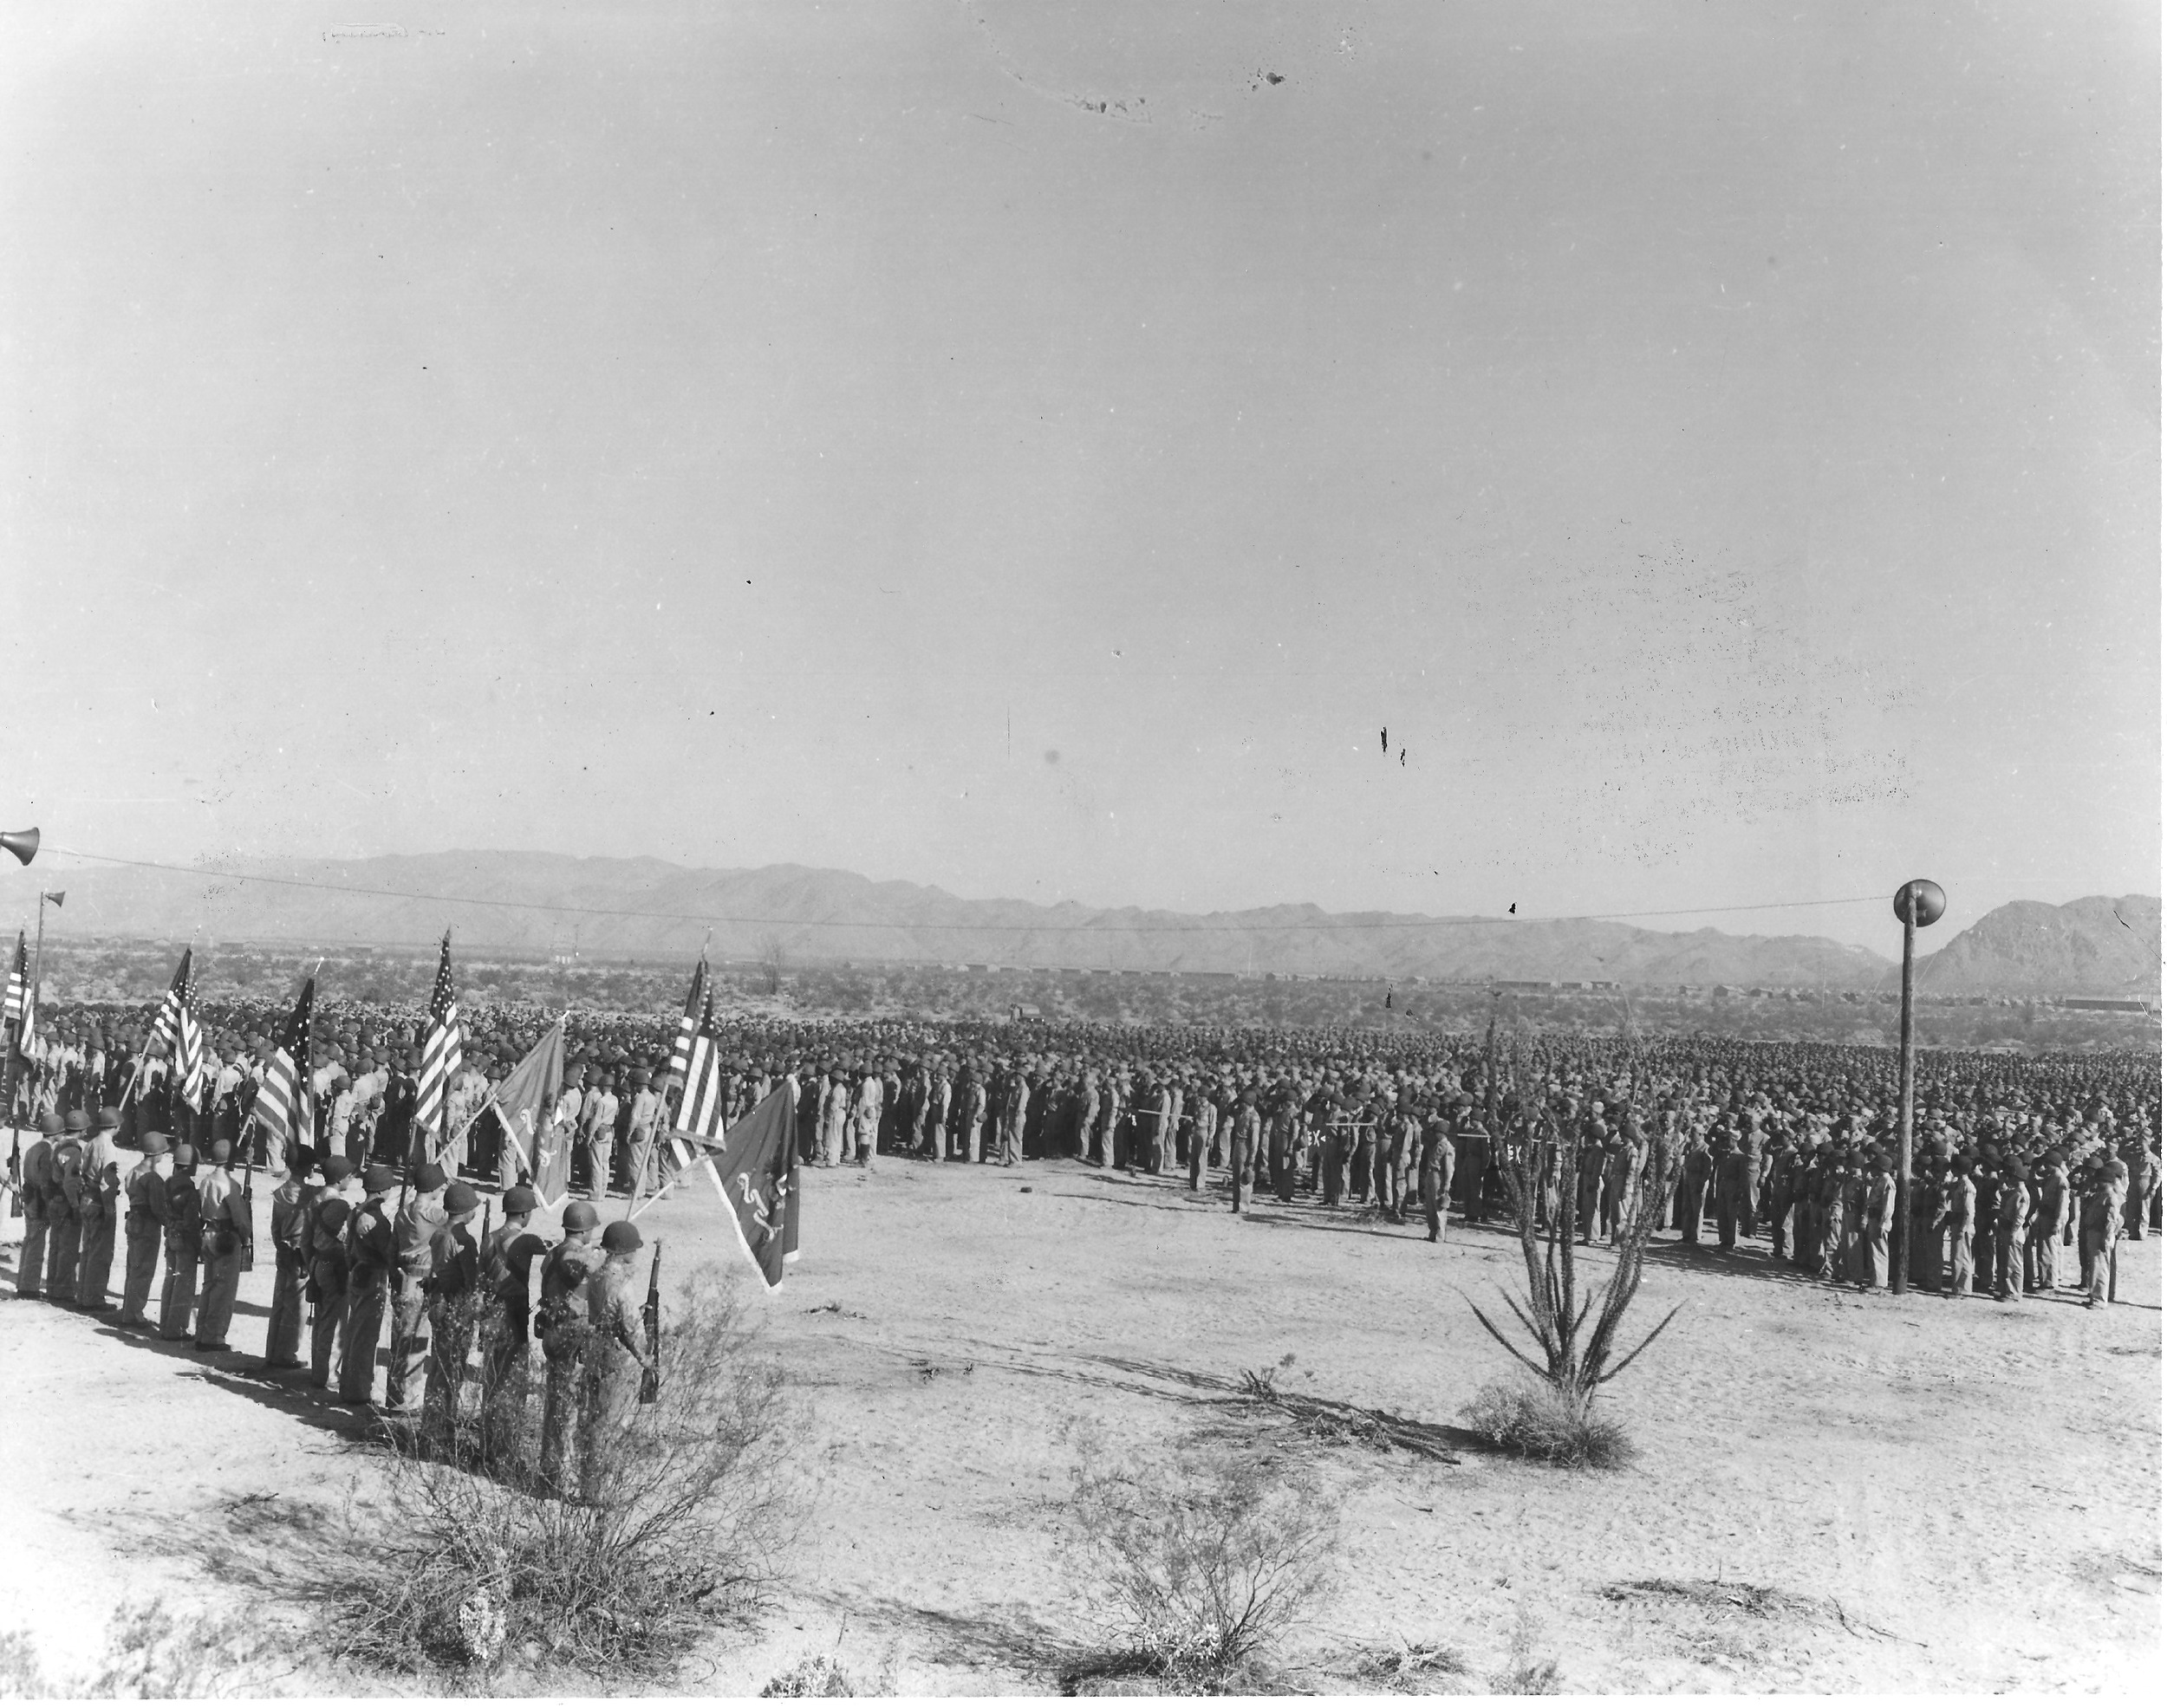 Here soldiers, and likely local press and dignitaries, listen to an address by Patton at the Desert Training Center. Patton's larger than life personality and premature death contributed to both locals and troops' emphasis on the general in DTC memorial attempts. Courtesy of the General Patton Memorial Museum.